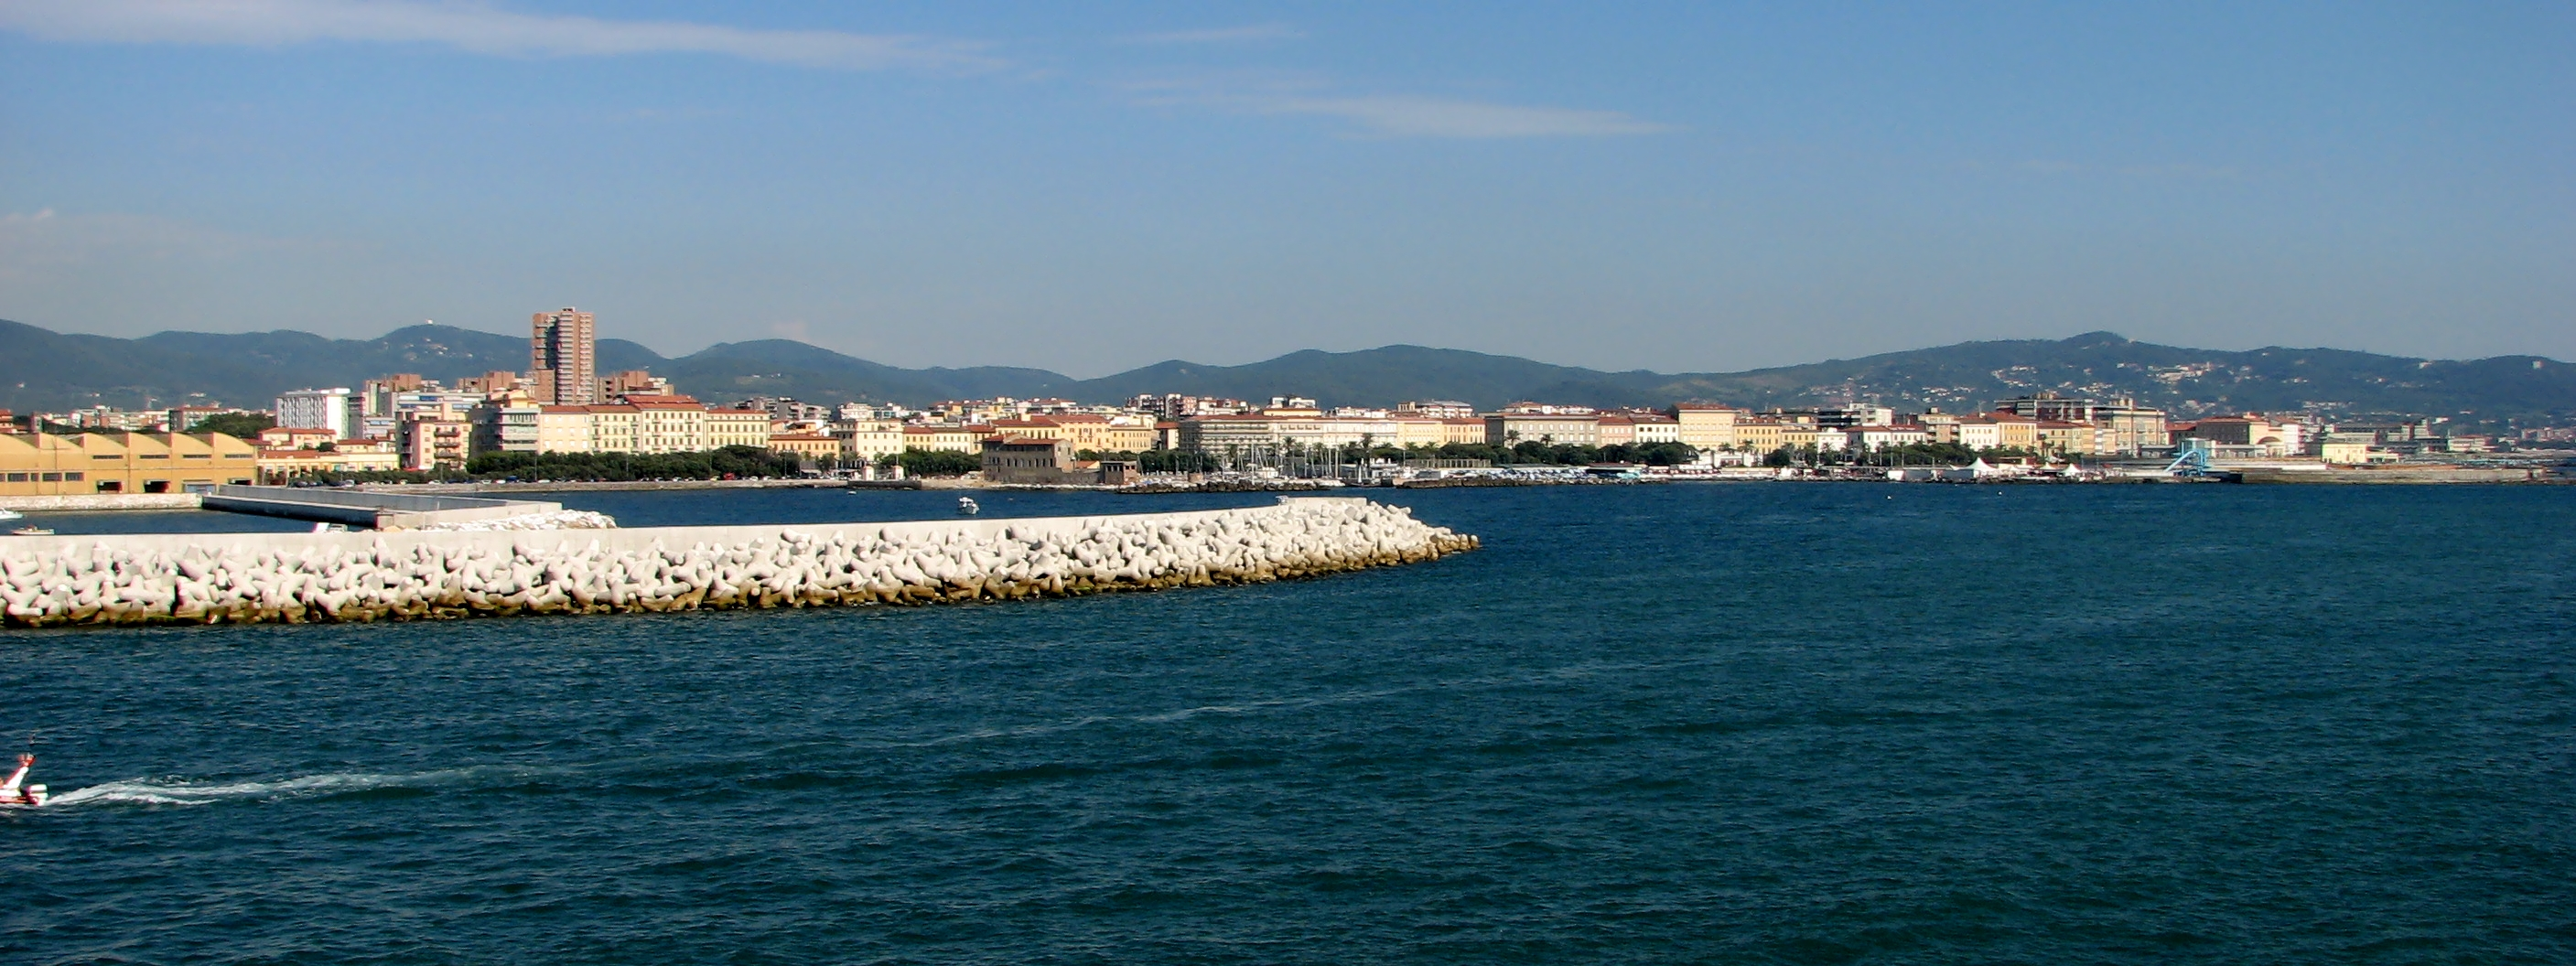 Livorno [Photo Credits: Conan]